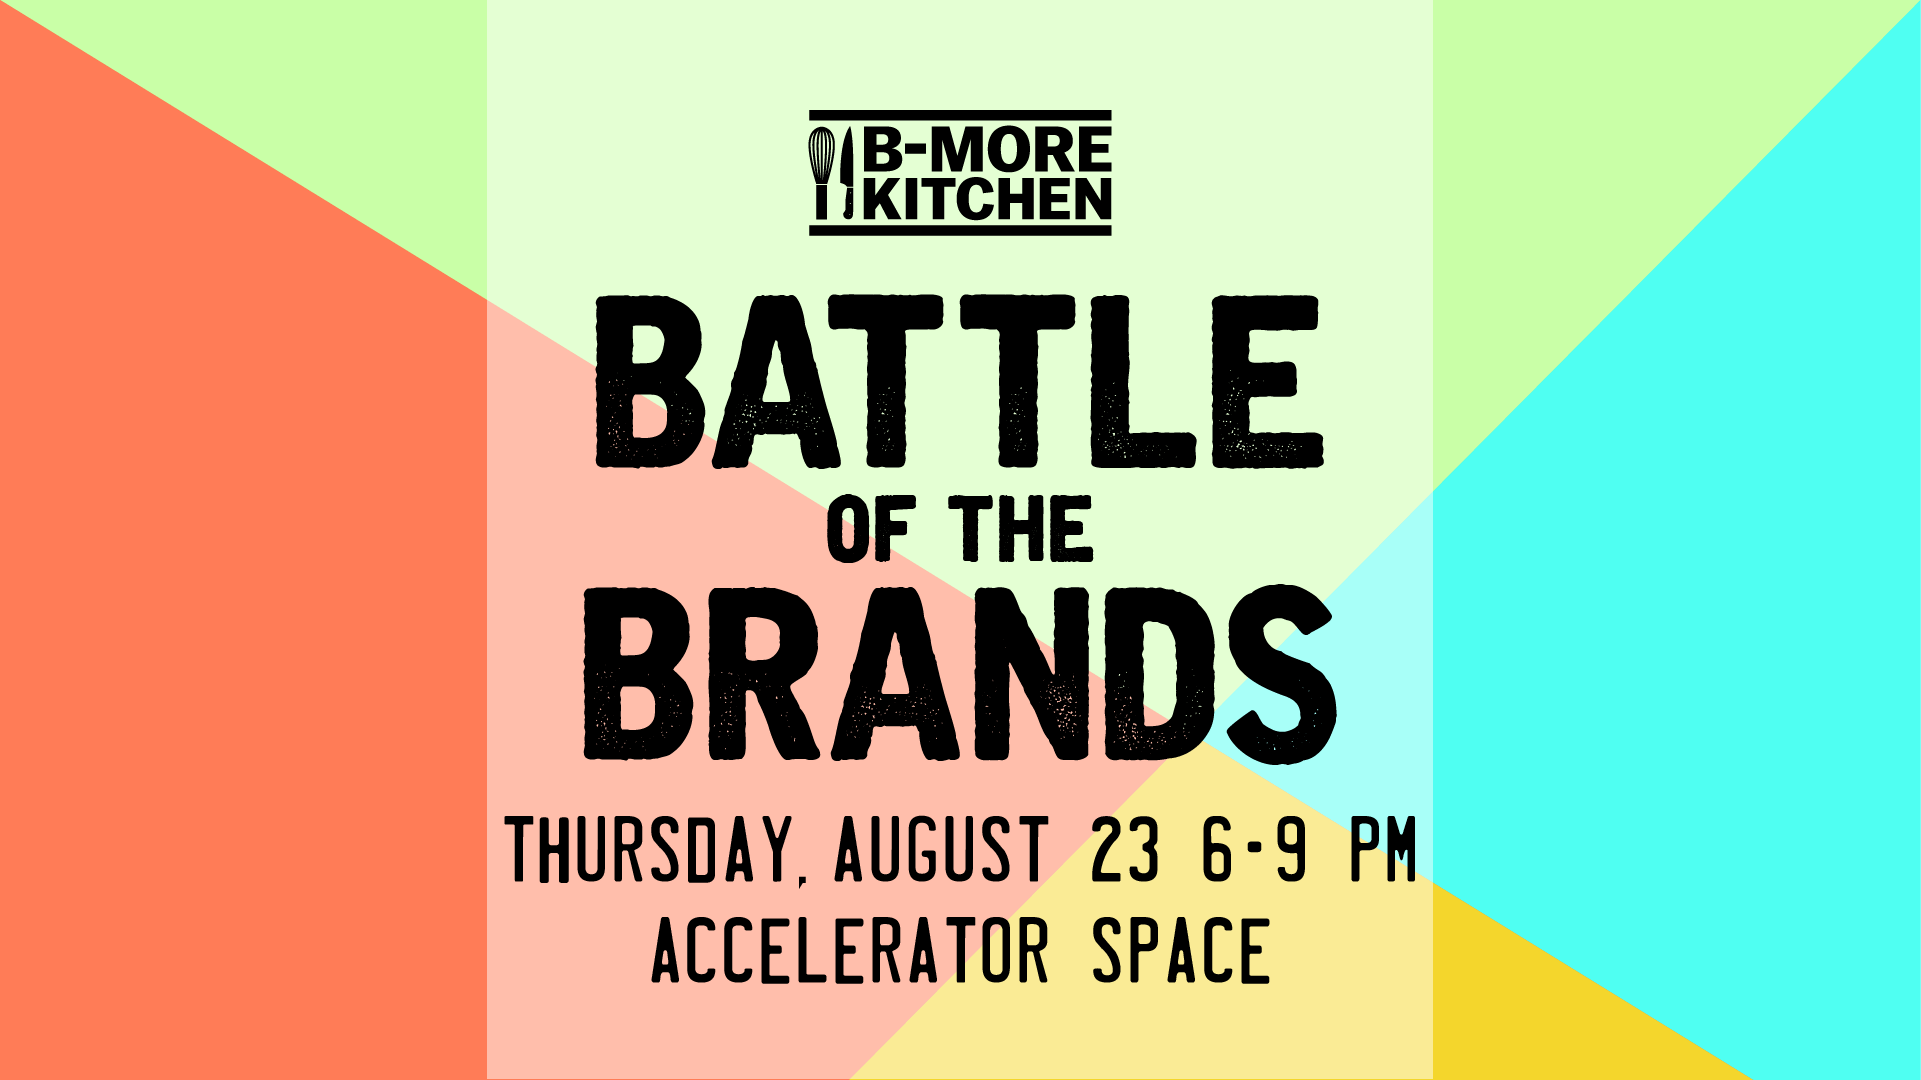 B-More Kitchen Battle of the Brands - 23 AUG 2018